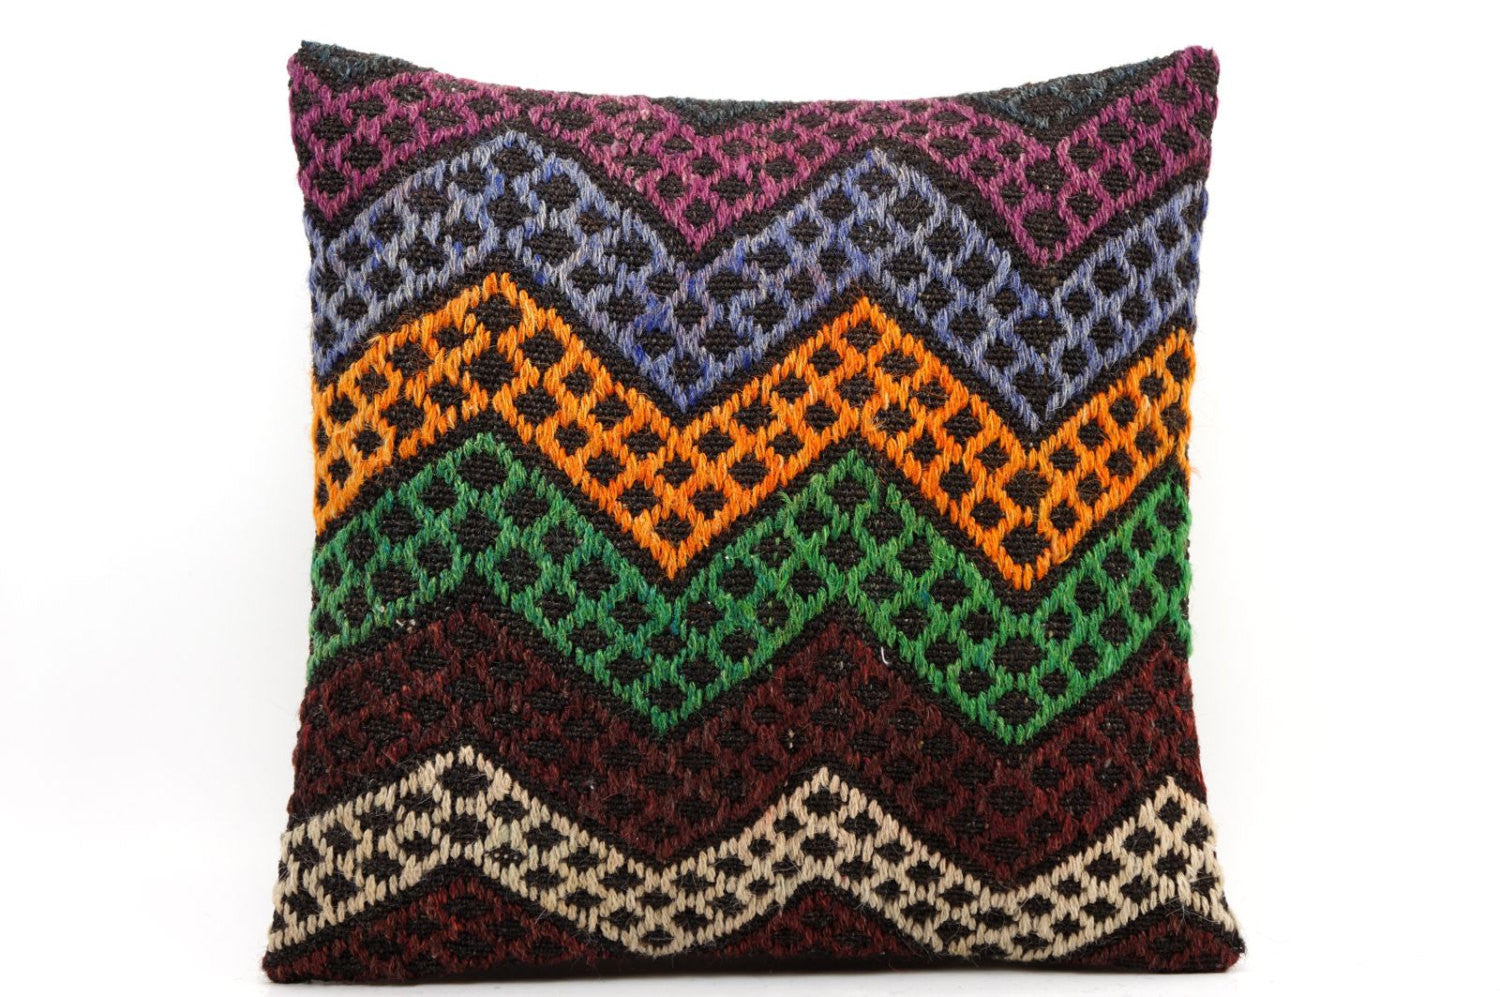 CLEARANCE 16x16 Vintage Hand Woven Kilim Pillow  501,white,green,blue,black,red,claret red,purple,chevron - kilimpillowstore  - 1